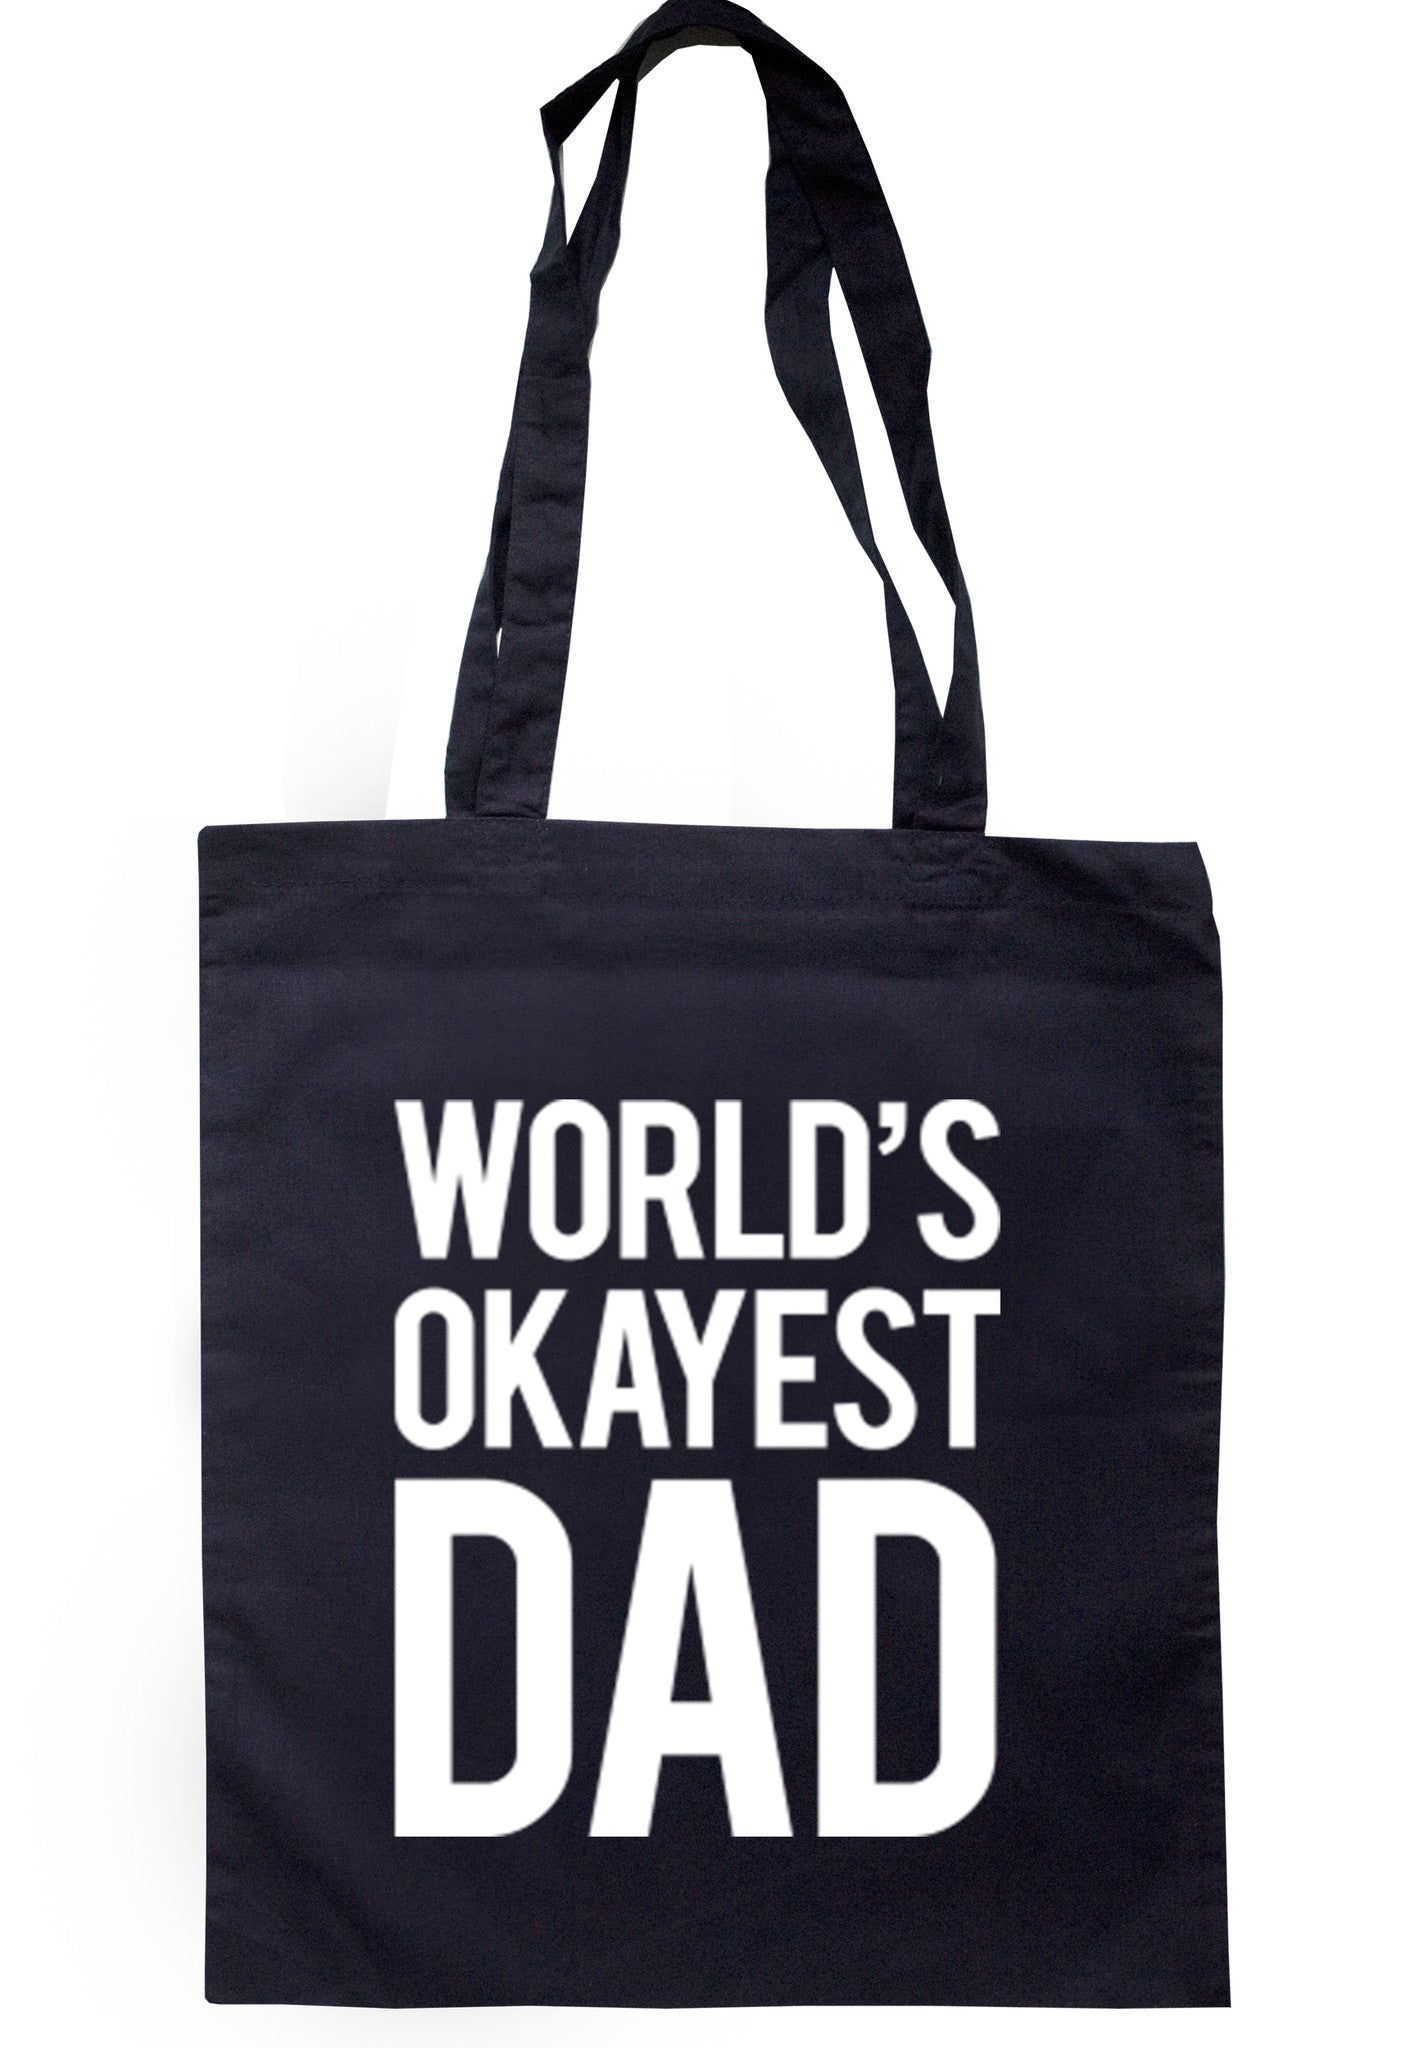 Worlds Okayest Dad Tote Bag TB0045 - Illustrated Identity Ltd.